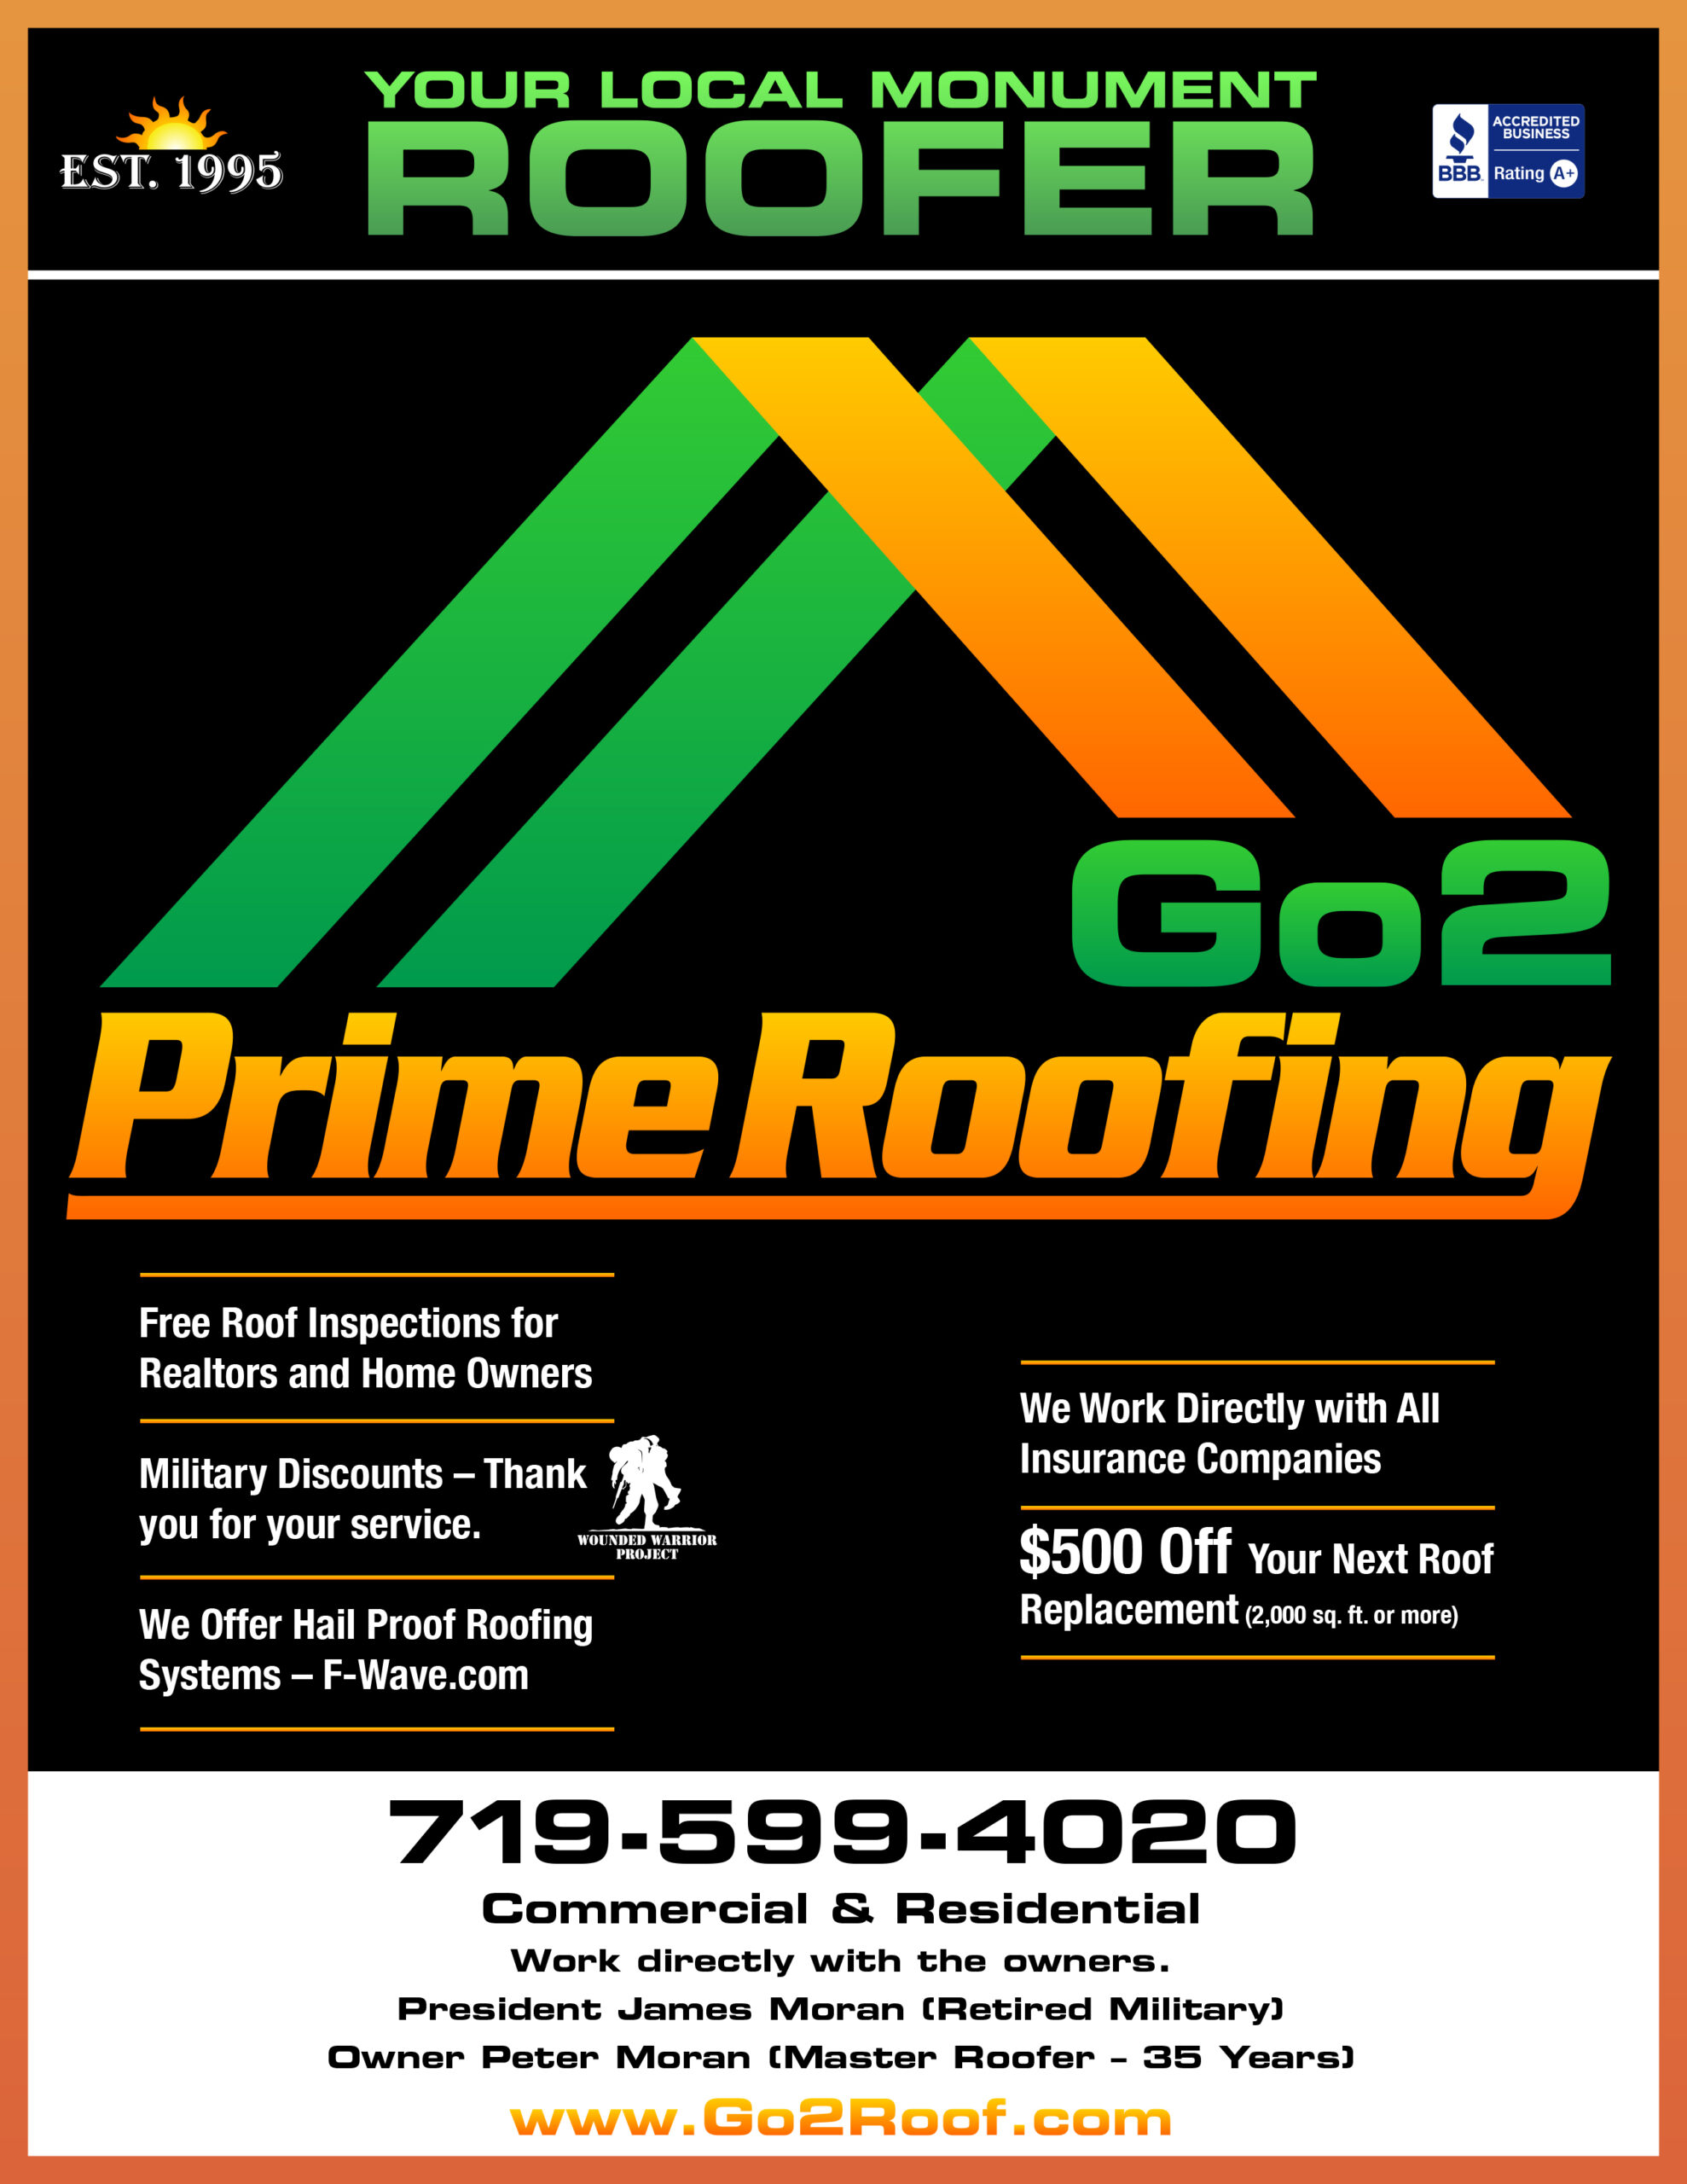 Go2 Prime Roofing